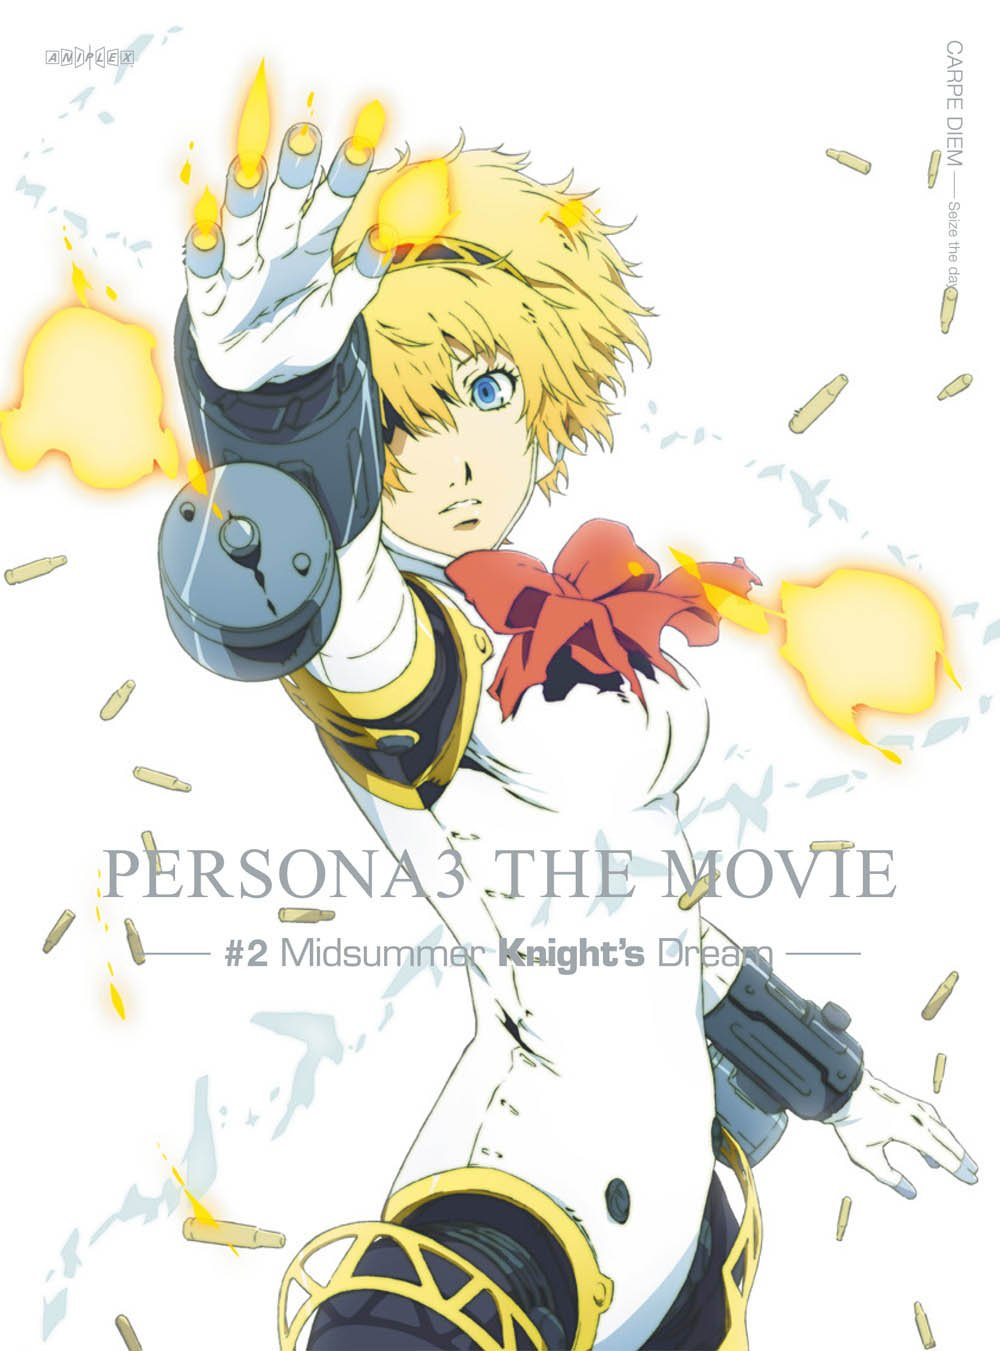 Amazon.com: Persona 3, The Movie: #2 Midsummer Knight's Dream: Movies & TV